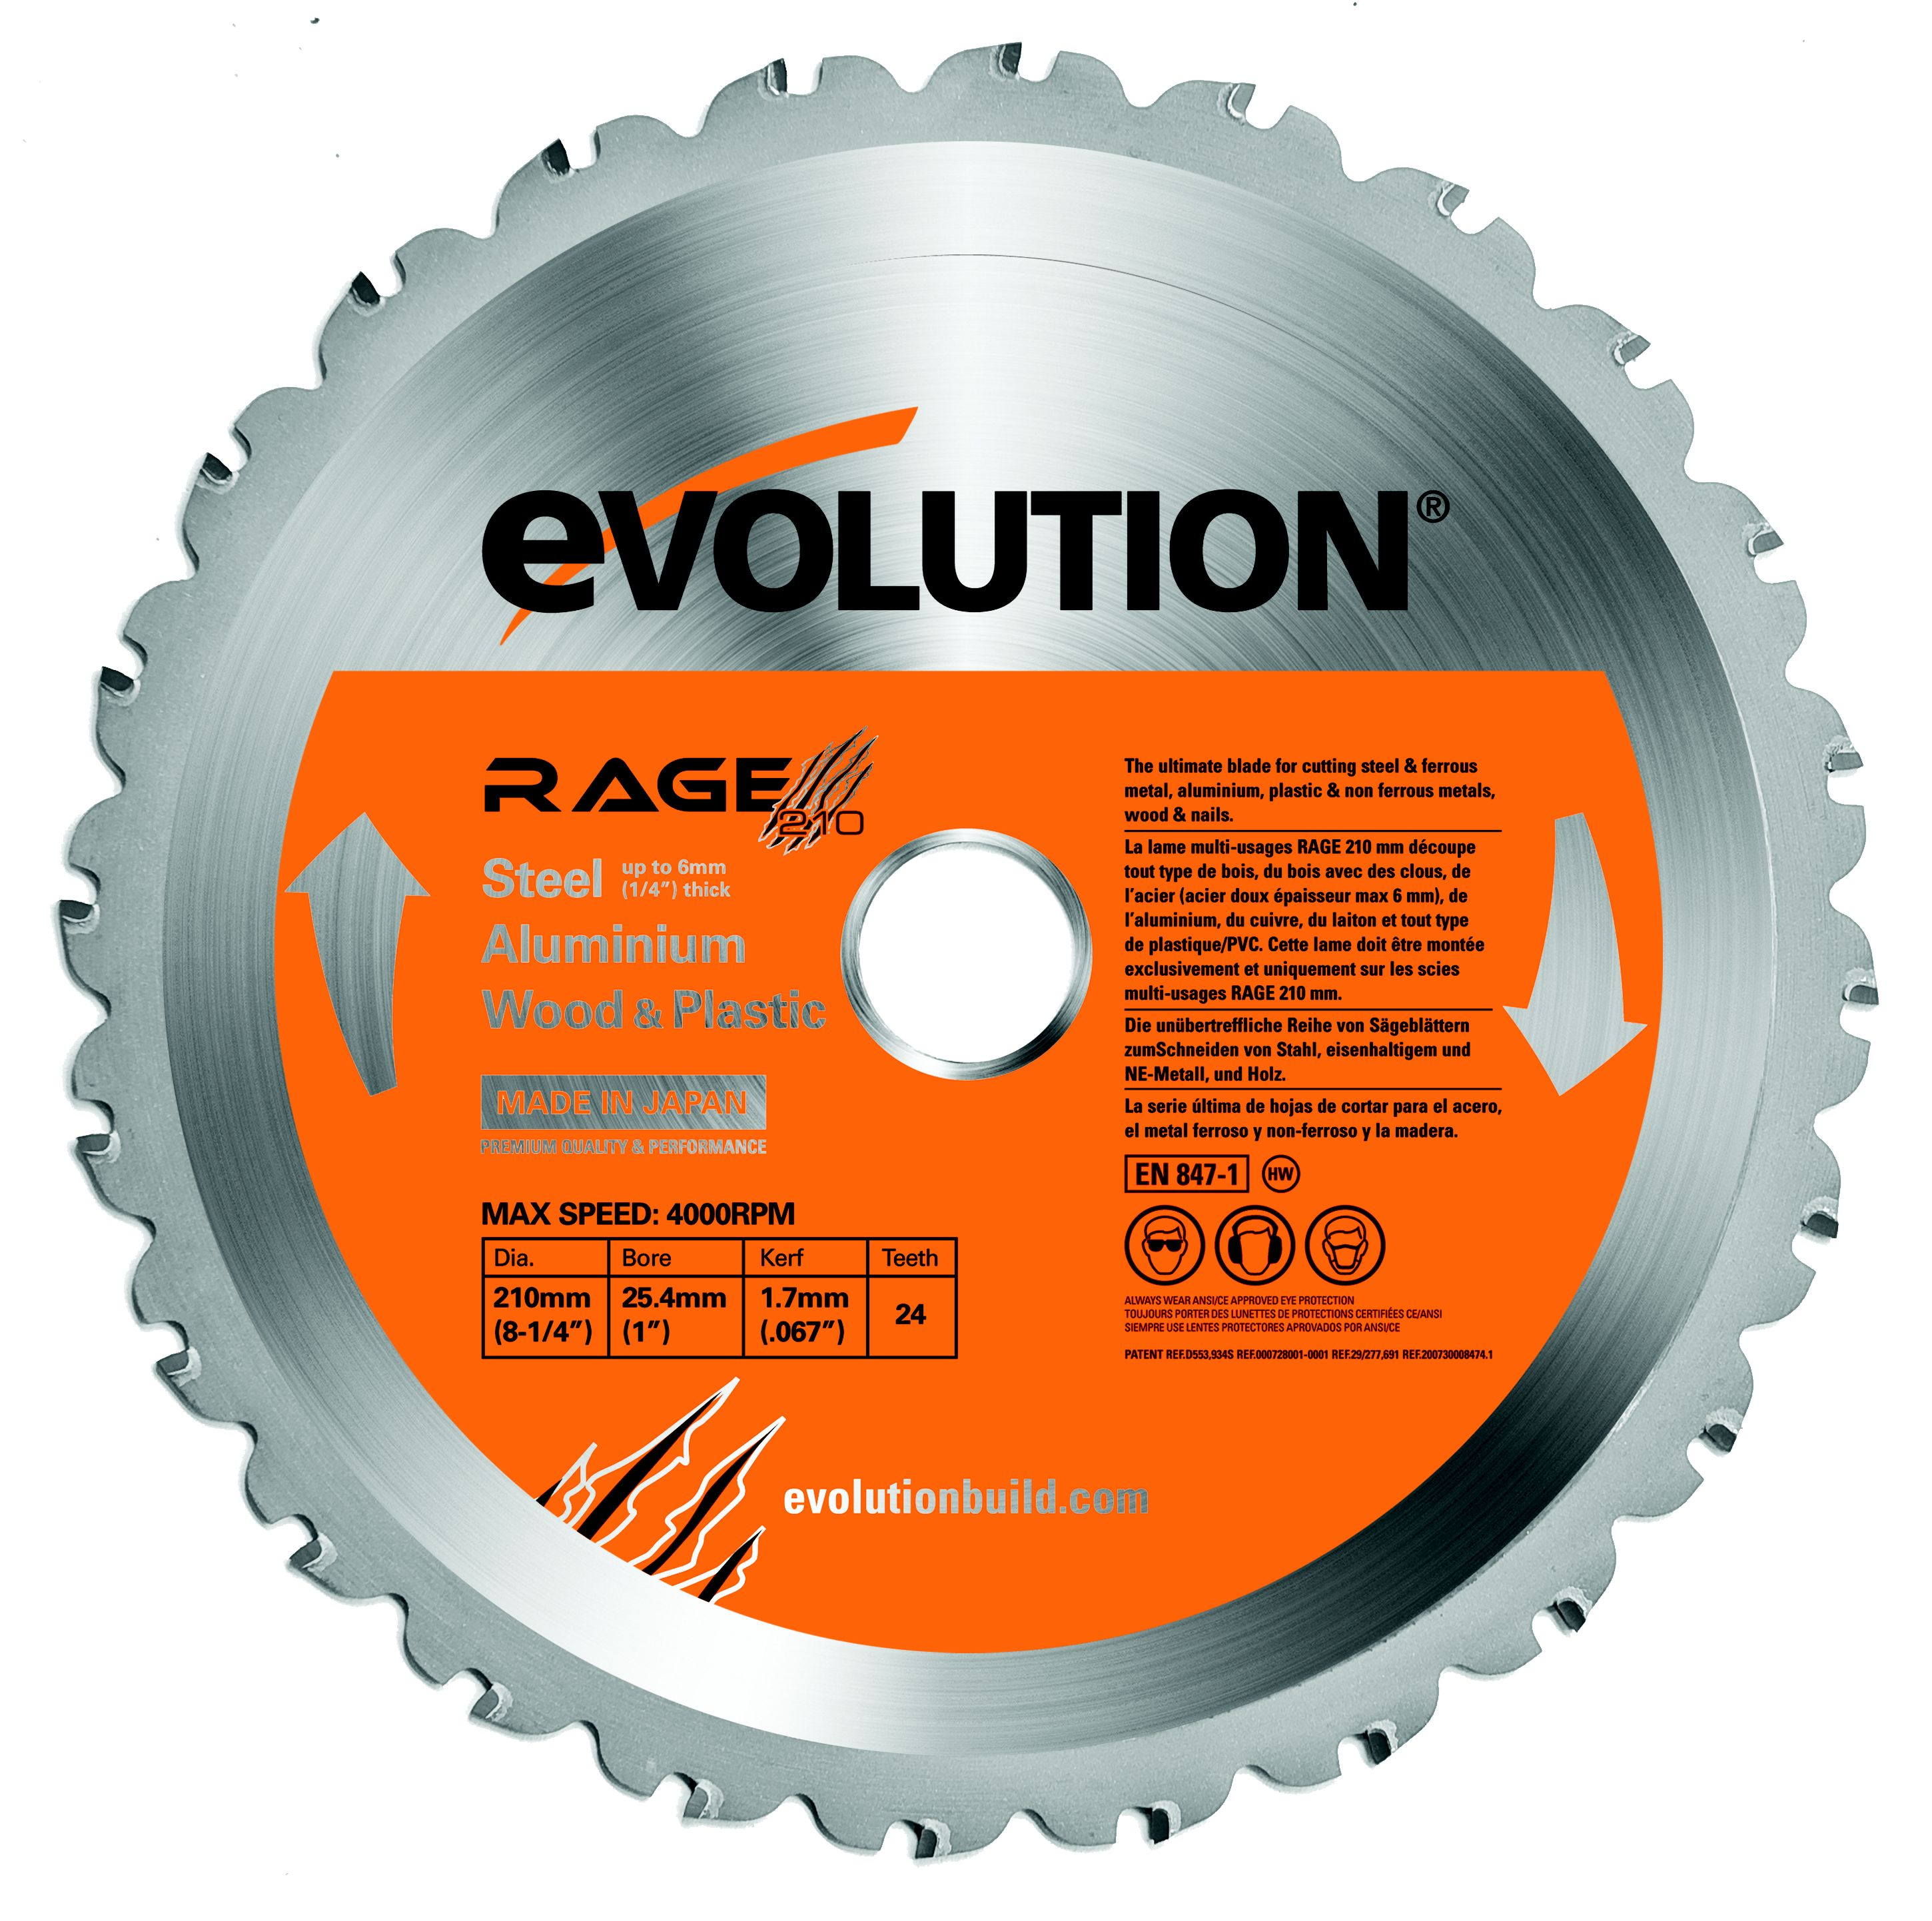 Fox Blocks Icf Guidebook moreover 28397864 also 33425222210695758 further Miter Saw Station Drawer Cabintes And Work Surface moreover Replacement Easton 3 5 Inch Circular Saw Blade for Easton Elite Cut Off Saw. on circular saw